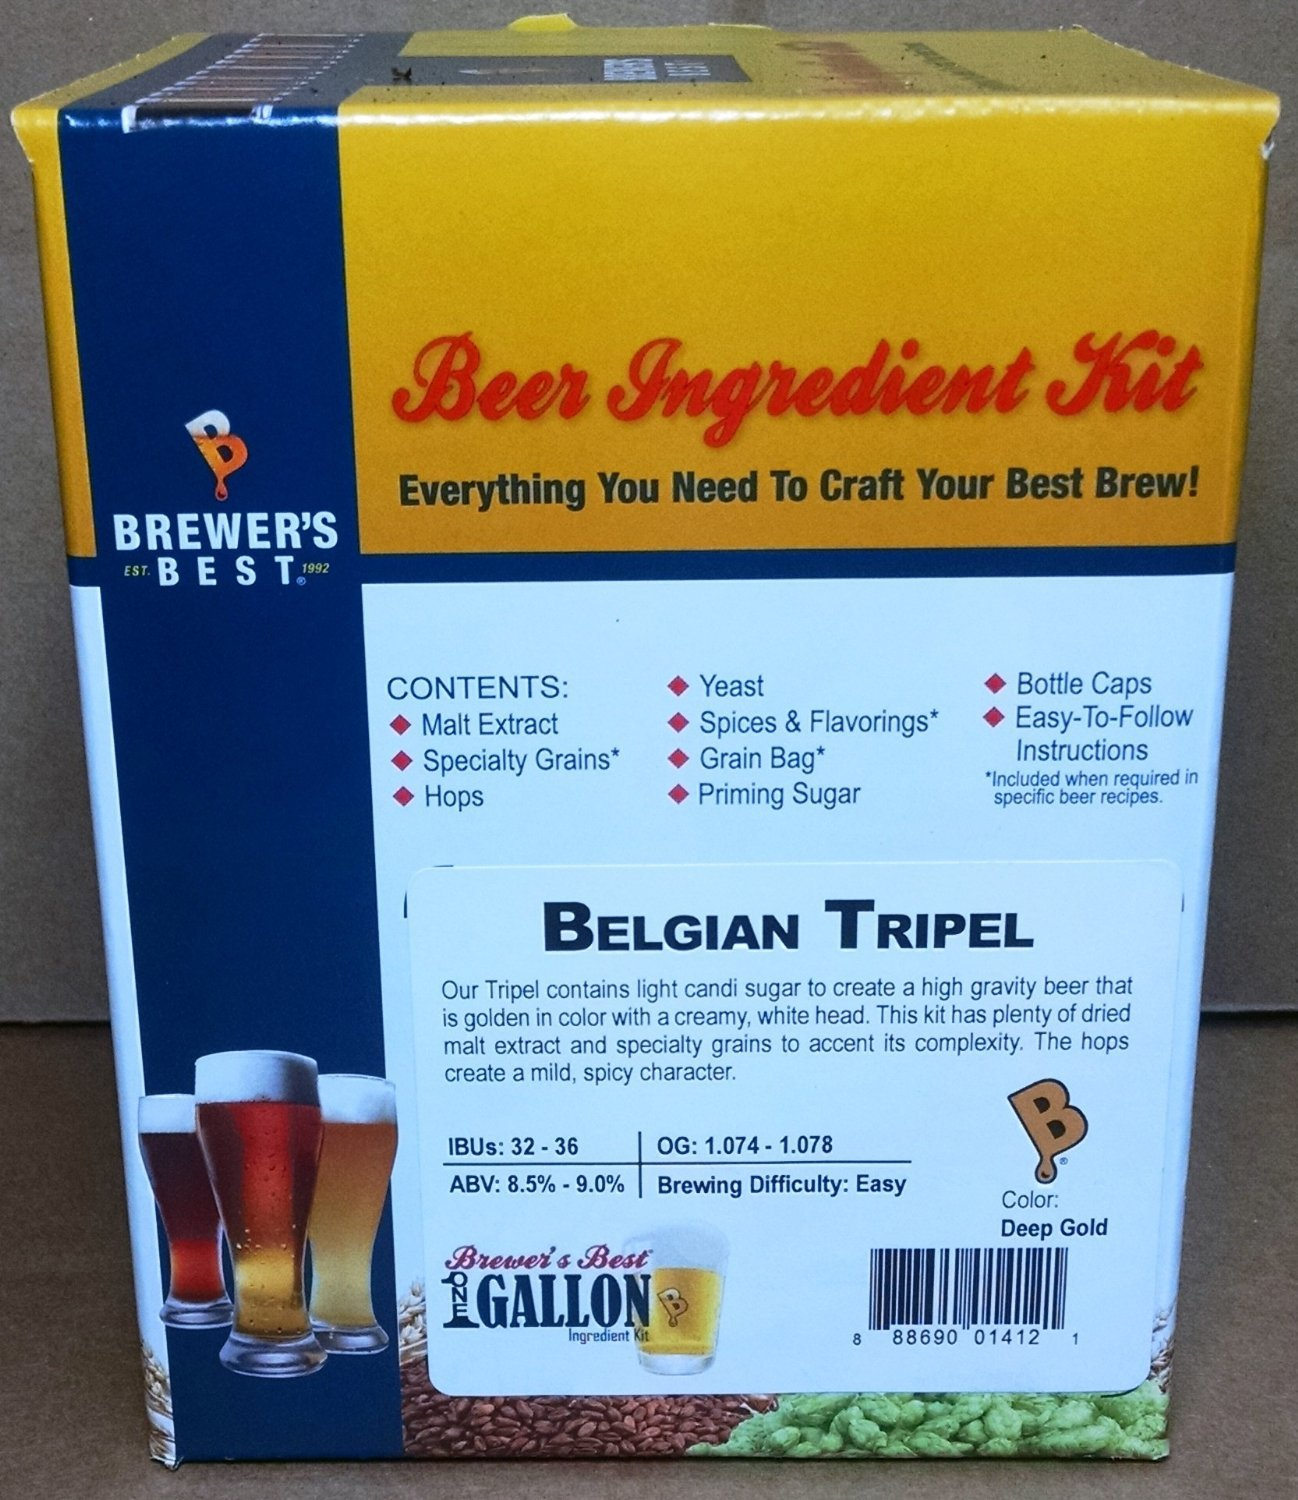 Brewer's Best One Gallon Home Brew Beer Ingredient Kit (Belgian Tripel)